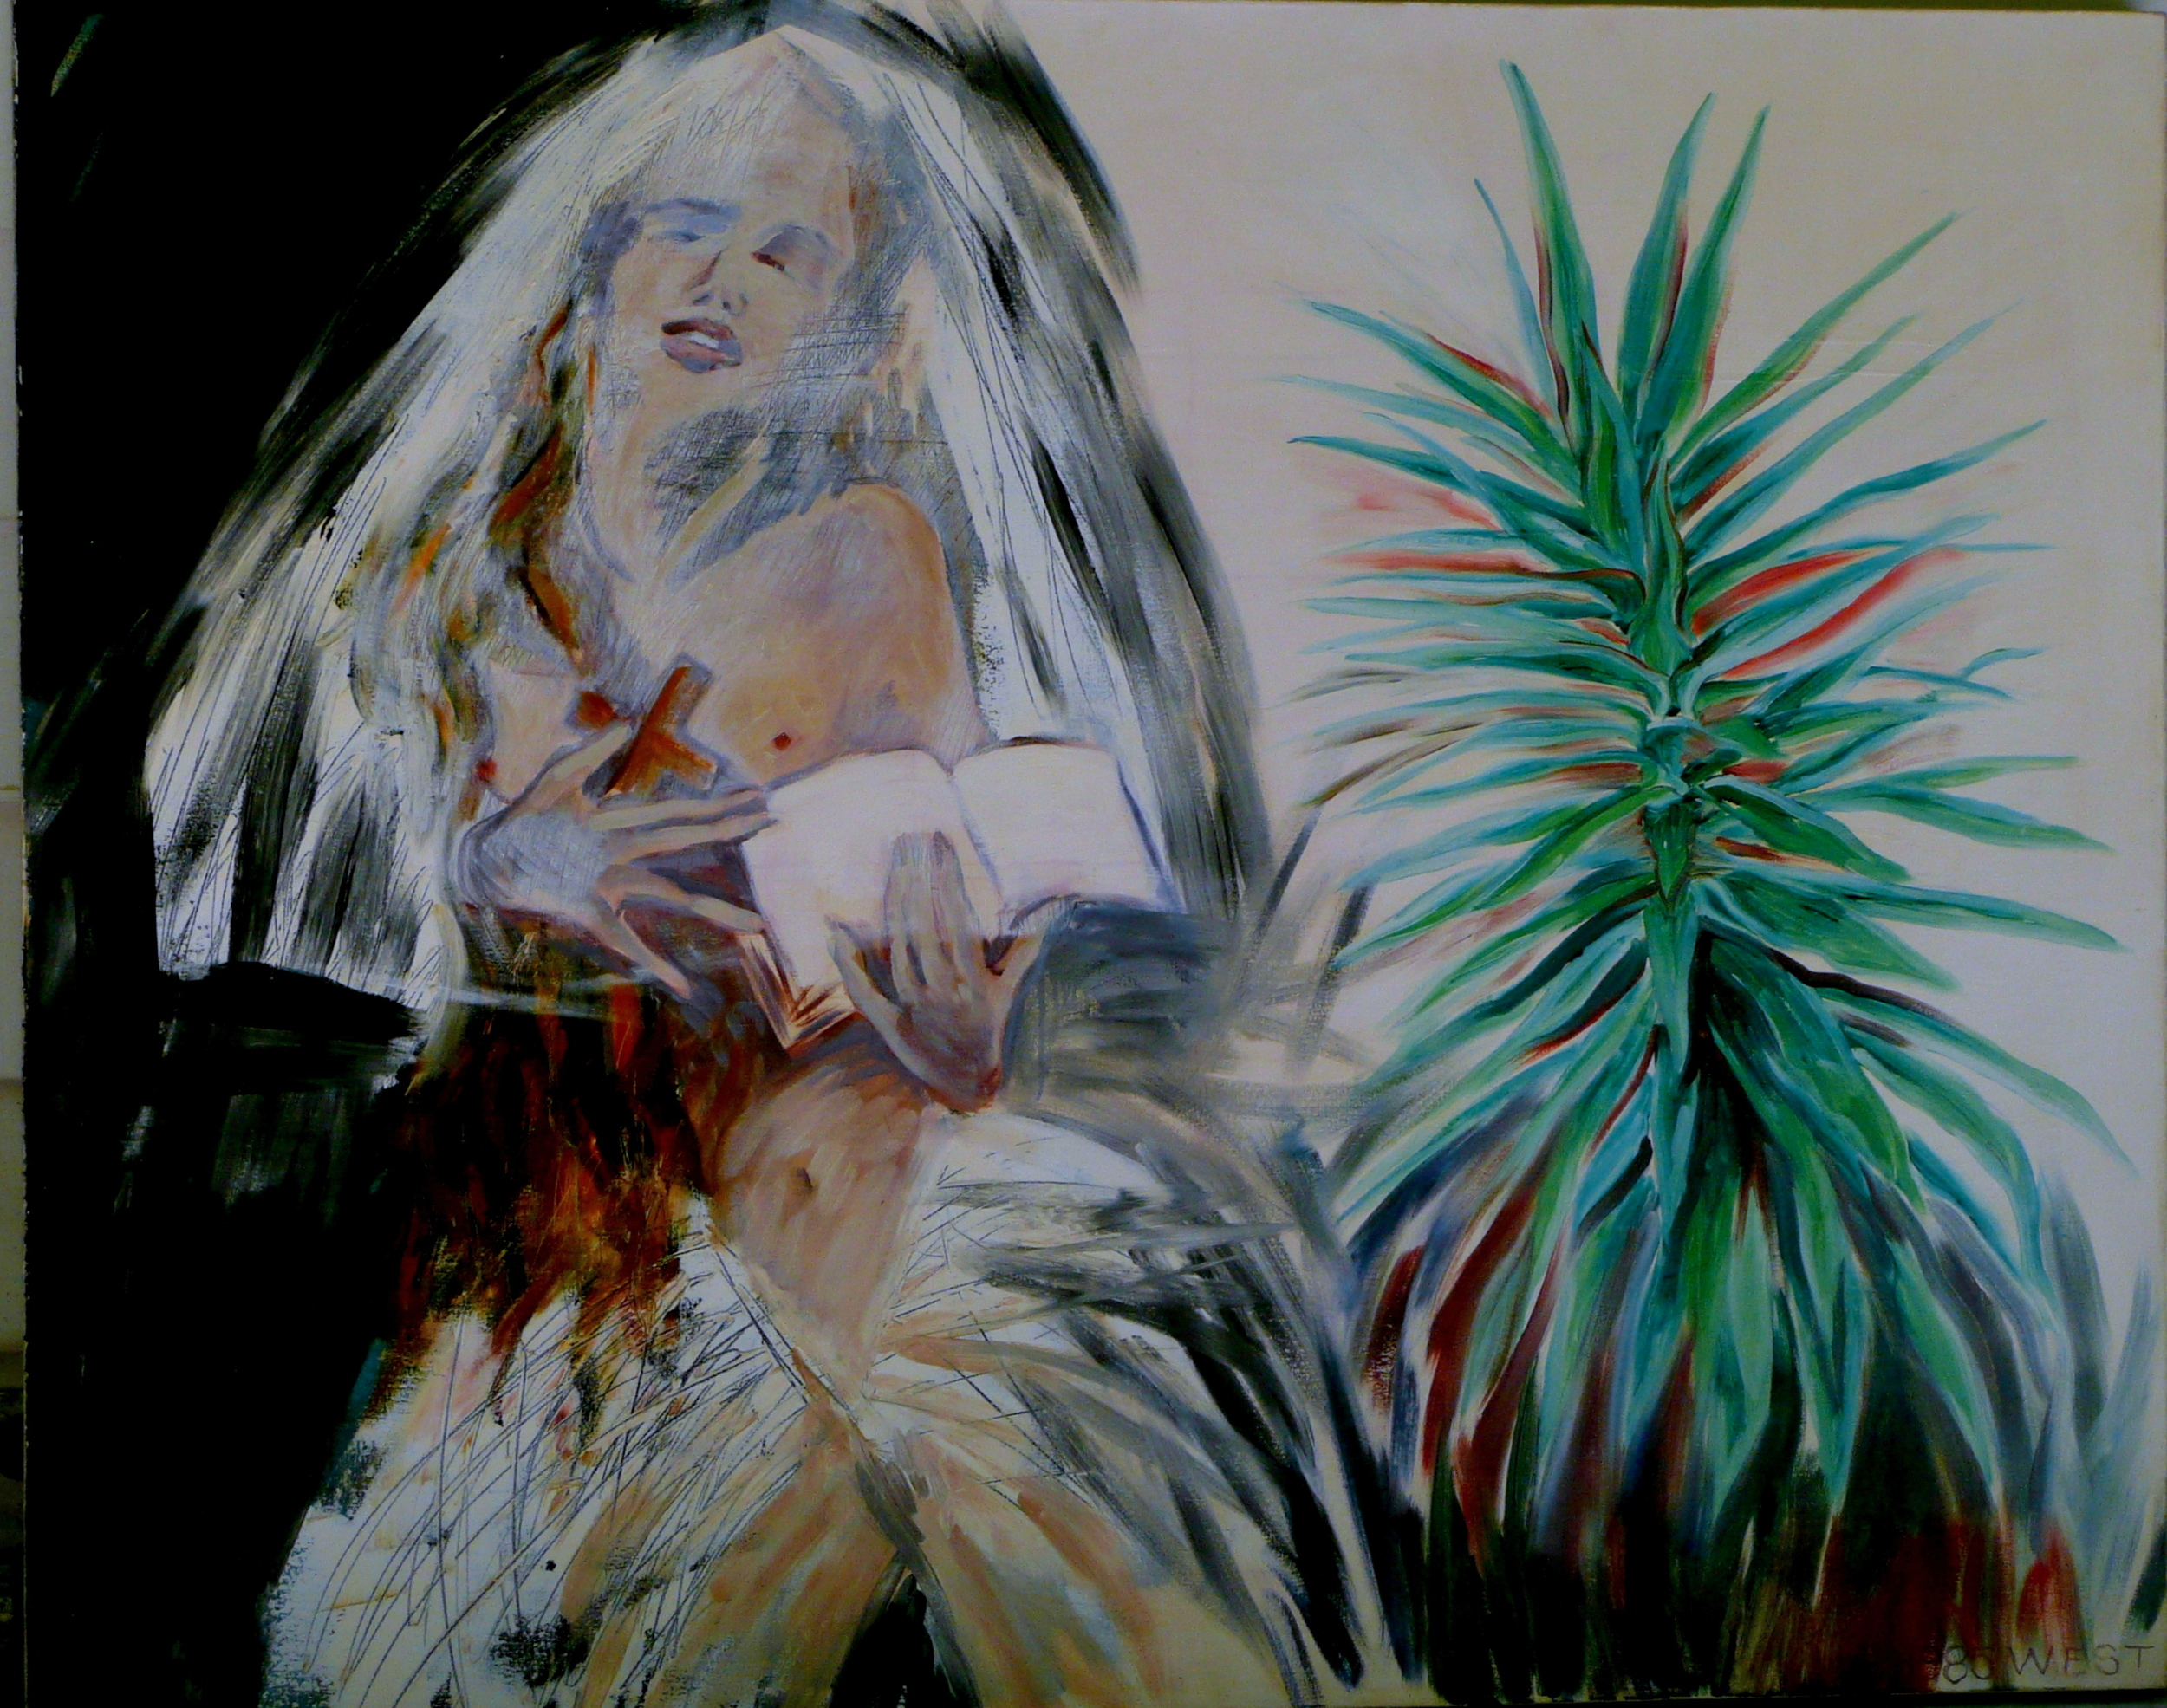 Telephone Madonna Bride with Yucca , 60 x 48 inches, 1985, Cheryl Petty